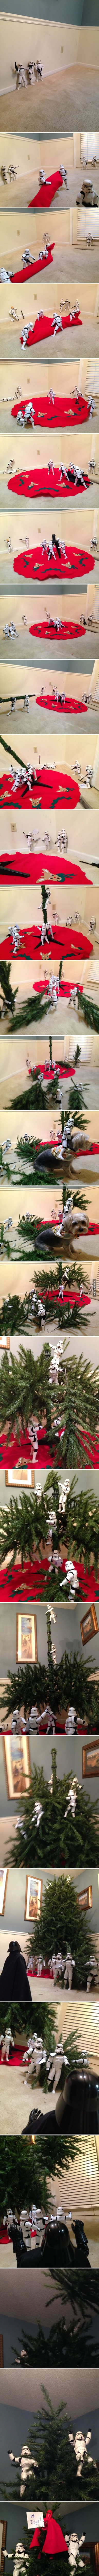 StormTroopers Assembling the Christmas Tree - LOLZ!!! The best thing I've seen in a long time! So cool!!! An Oscar to whoever had this awesome idea!